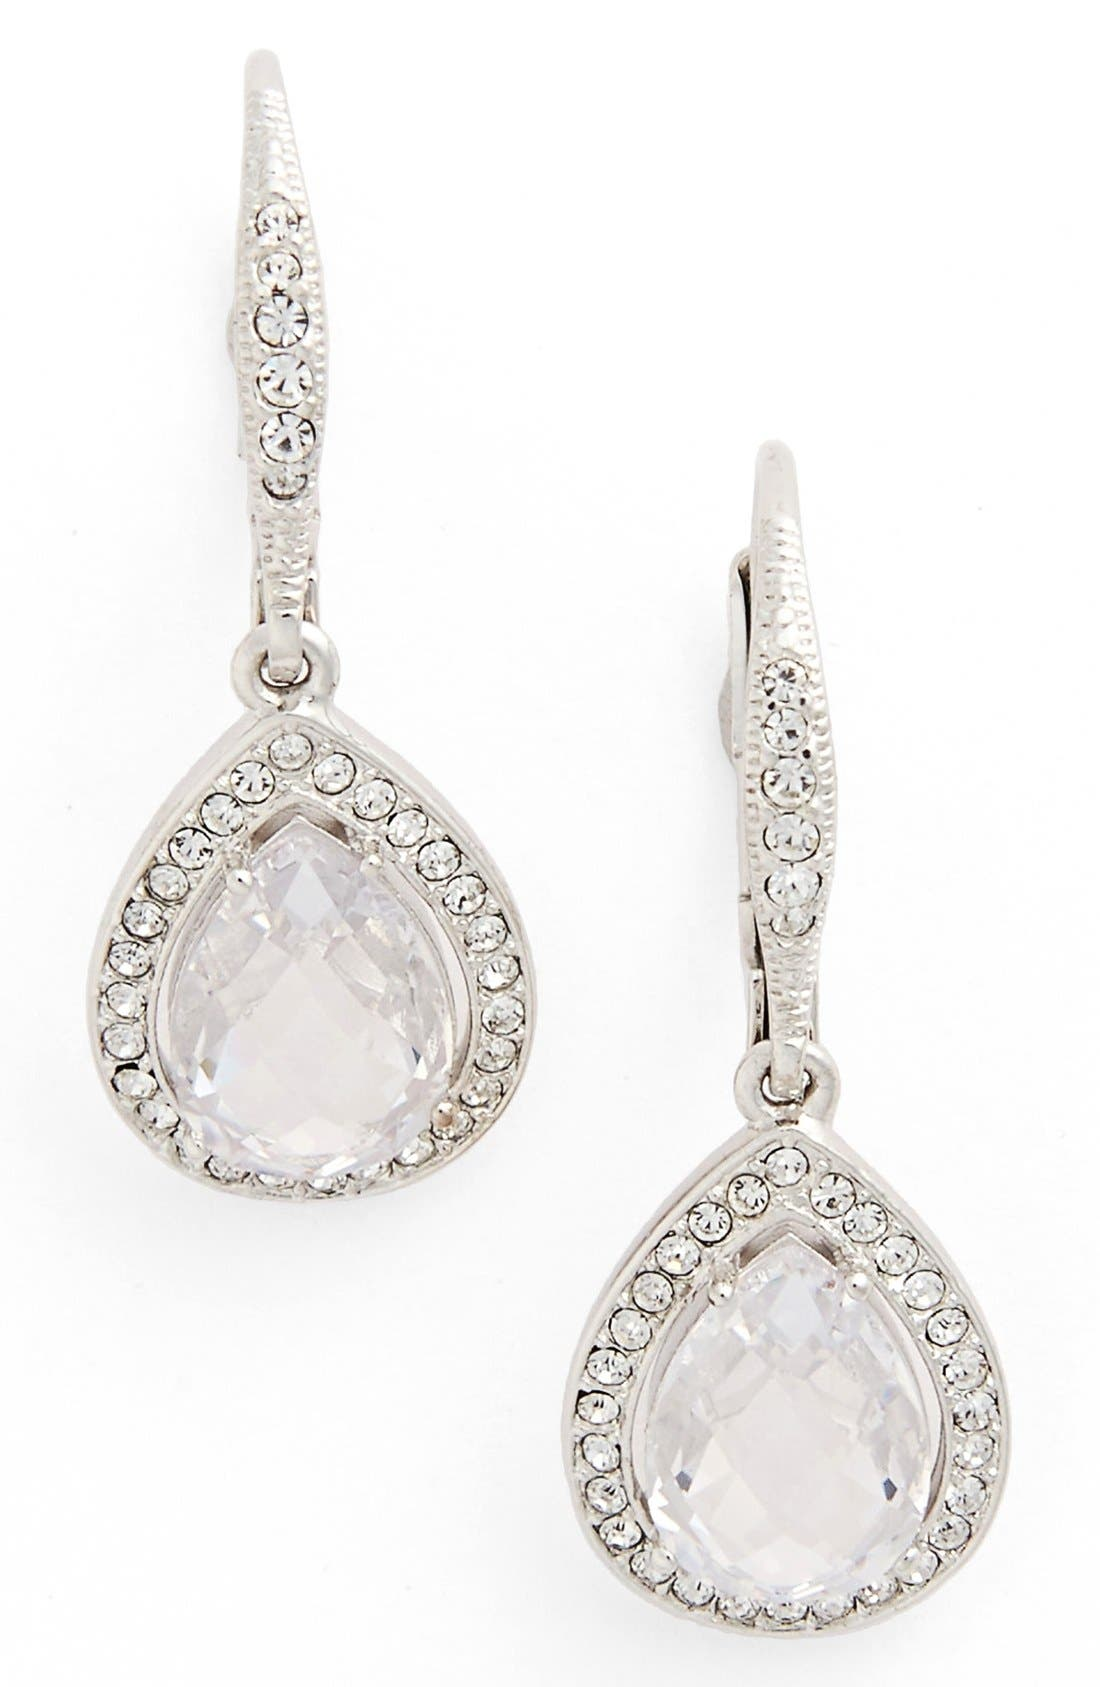 Pear Drop Earrings,                             Main thumbnail 1, color,                             CLEAR CRYSTAL/ SILVER